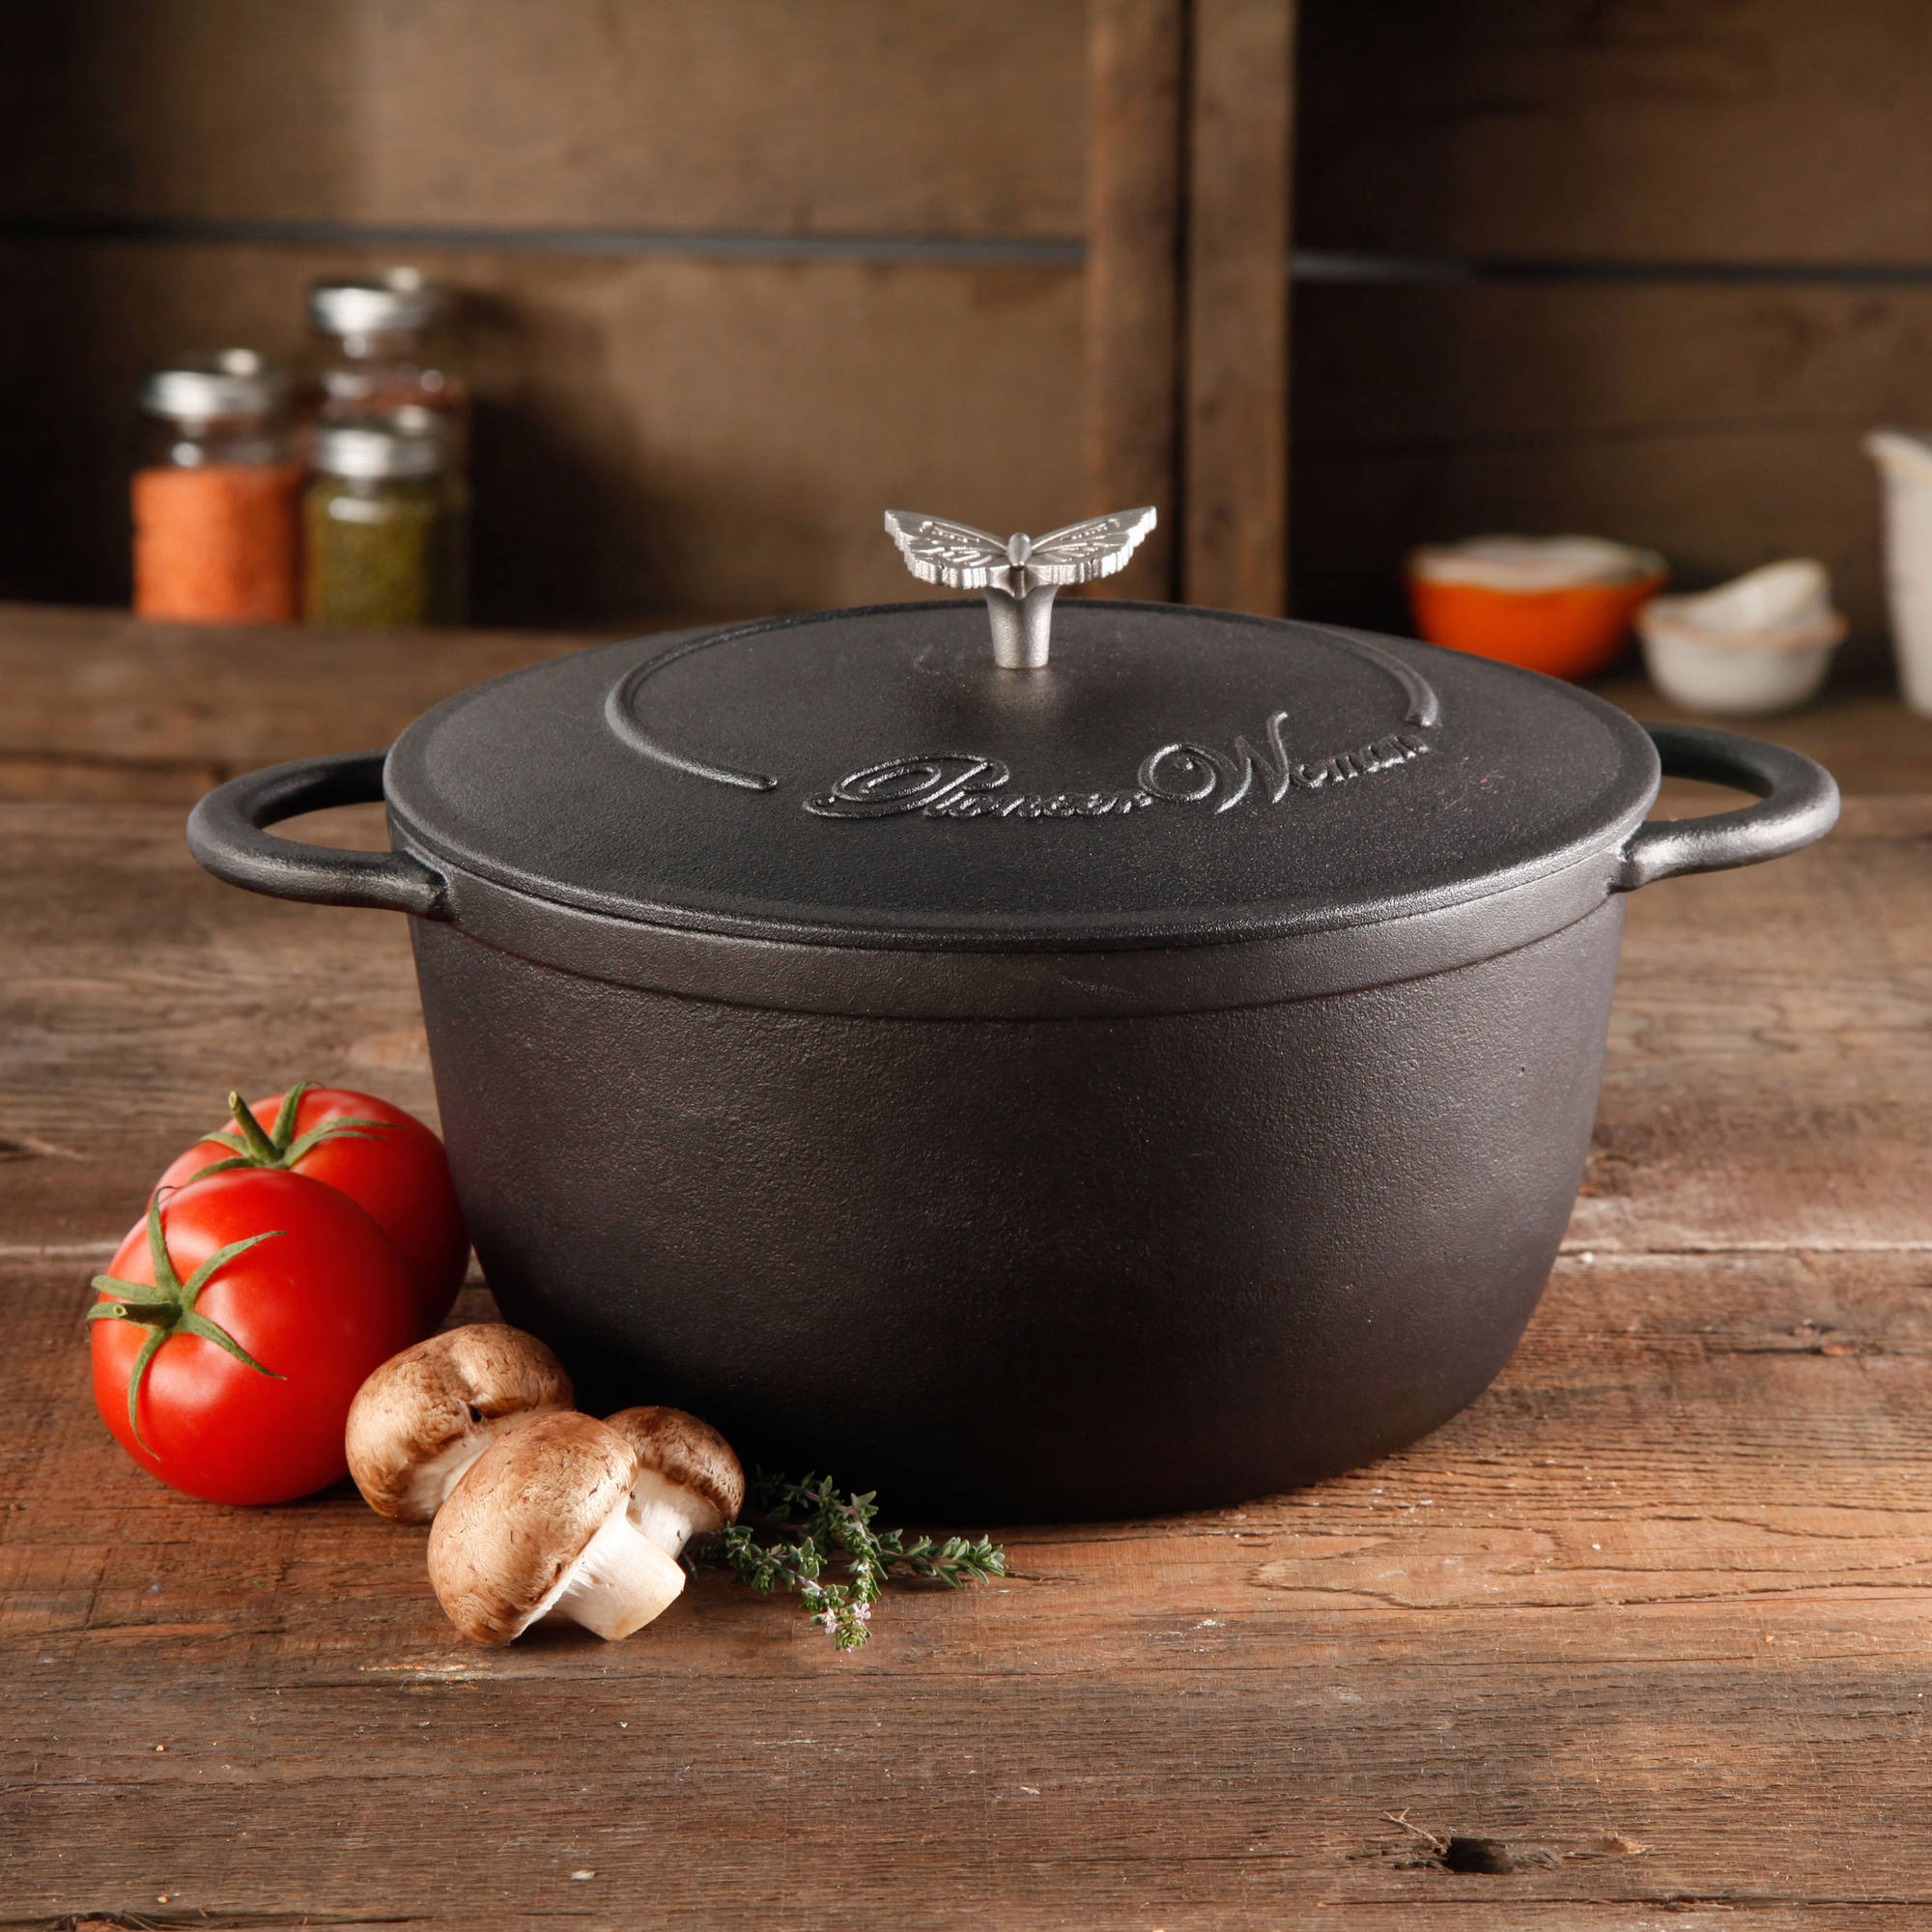 The Pioneer Woman Timeless Cast Iron 5-Quart Pre-Seasoned Dutch Oven with Lid, Bakelight Knob & Stainless Steel Butterfly Knob